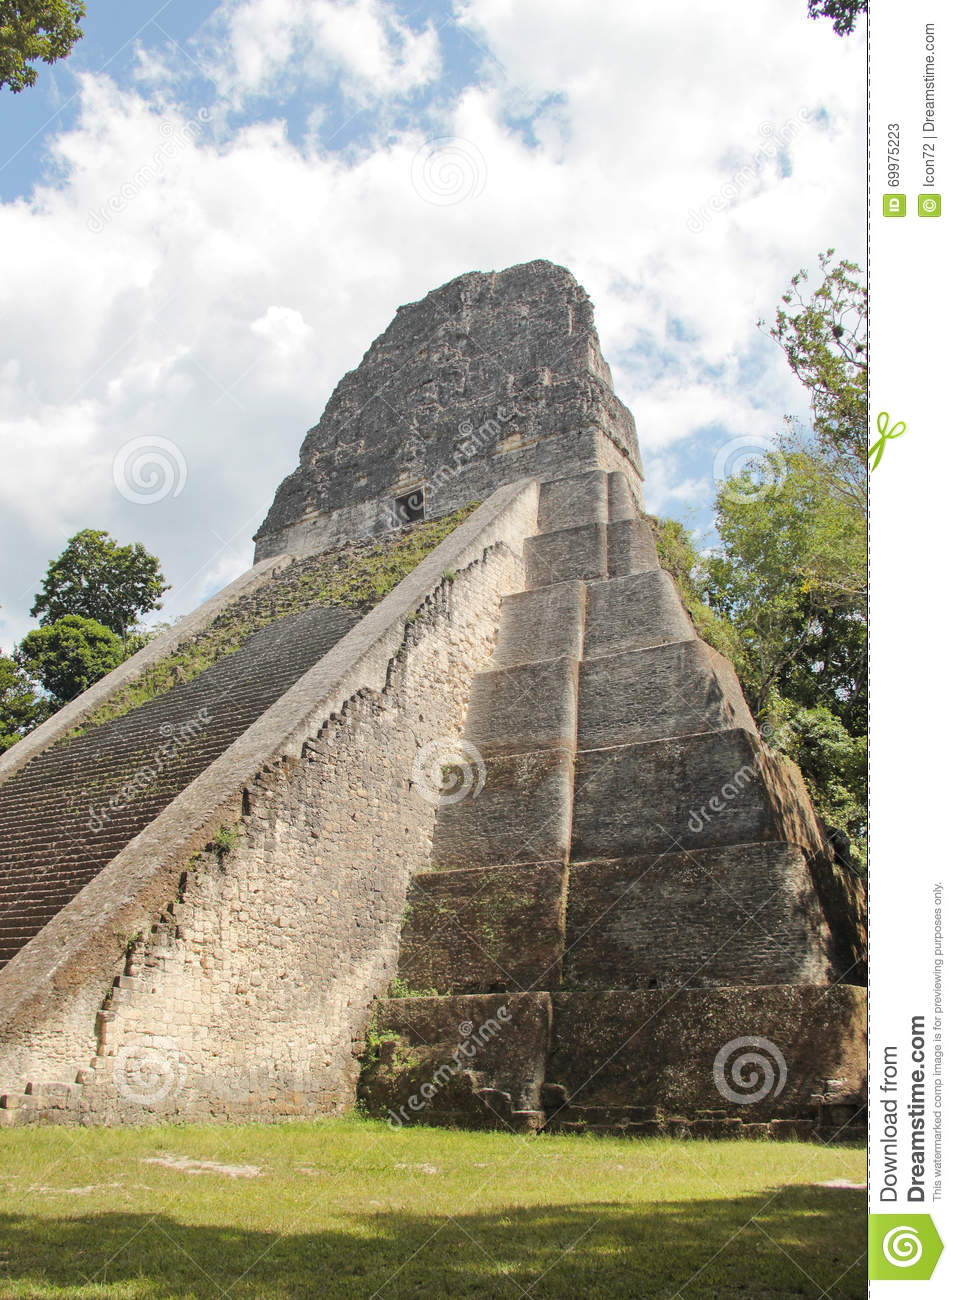 Tikal, Guatemala: Temple V, one of the major pyramids (57 metre